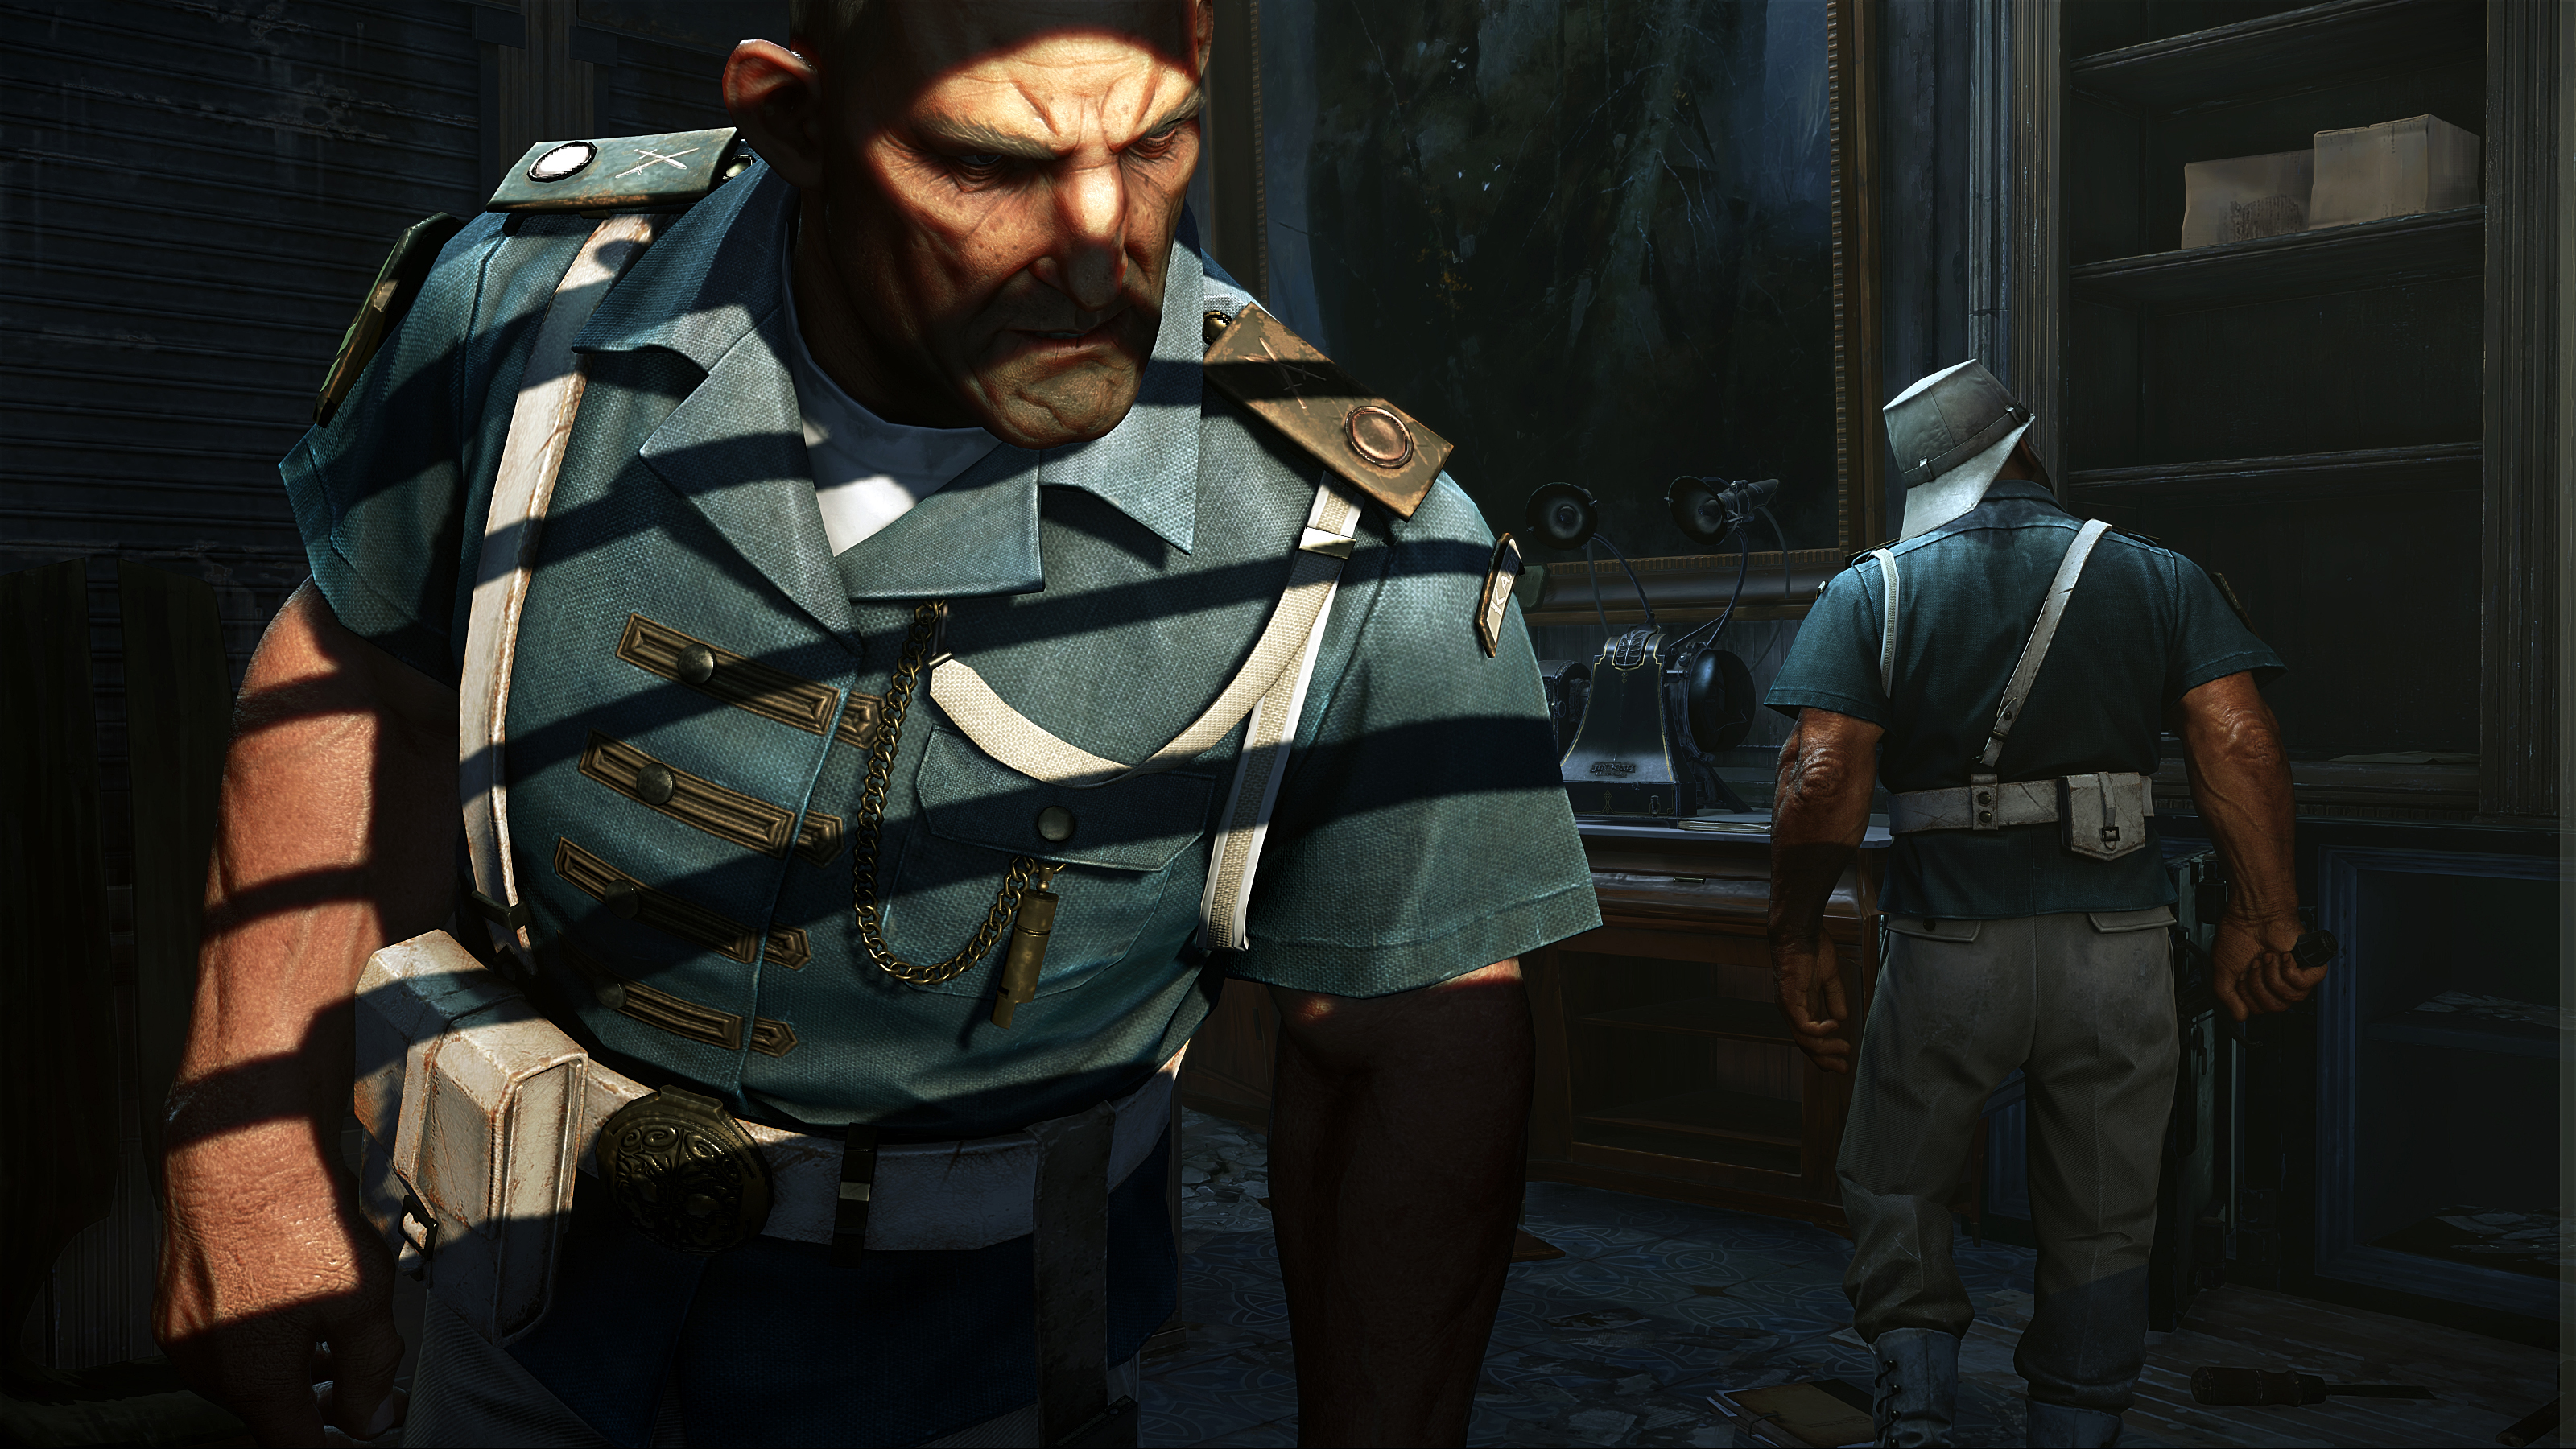 Dishonored 2 devs on building a more ambitious sequel